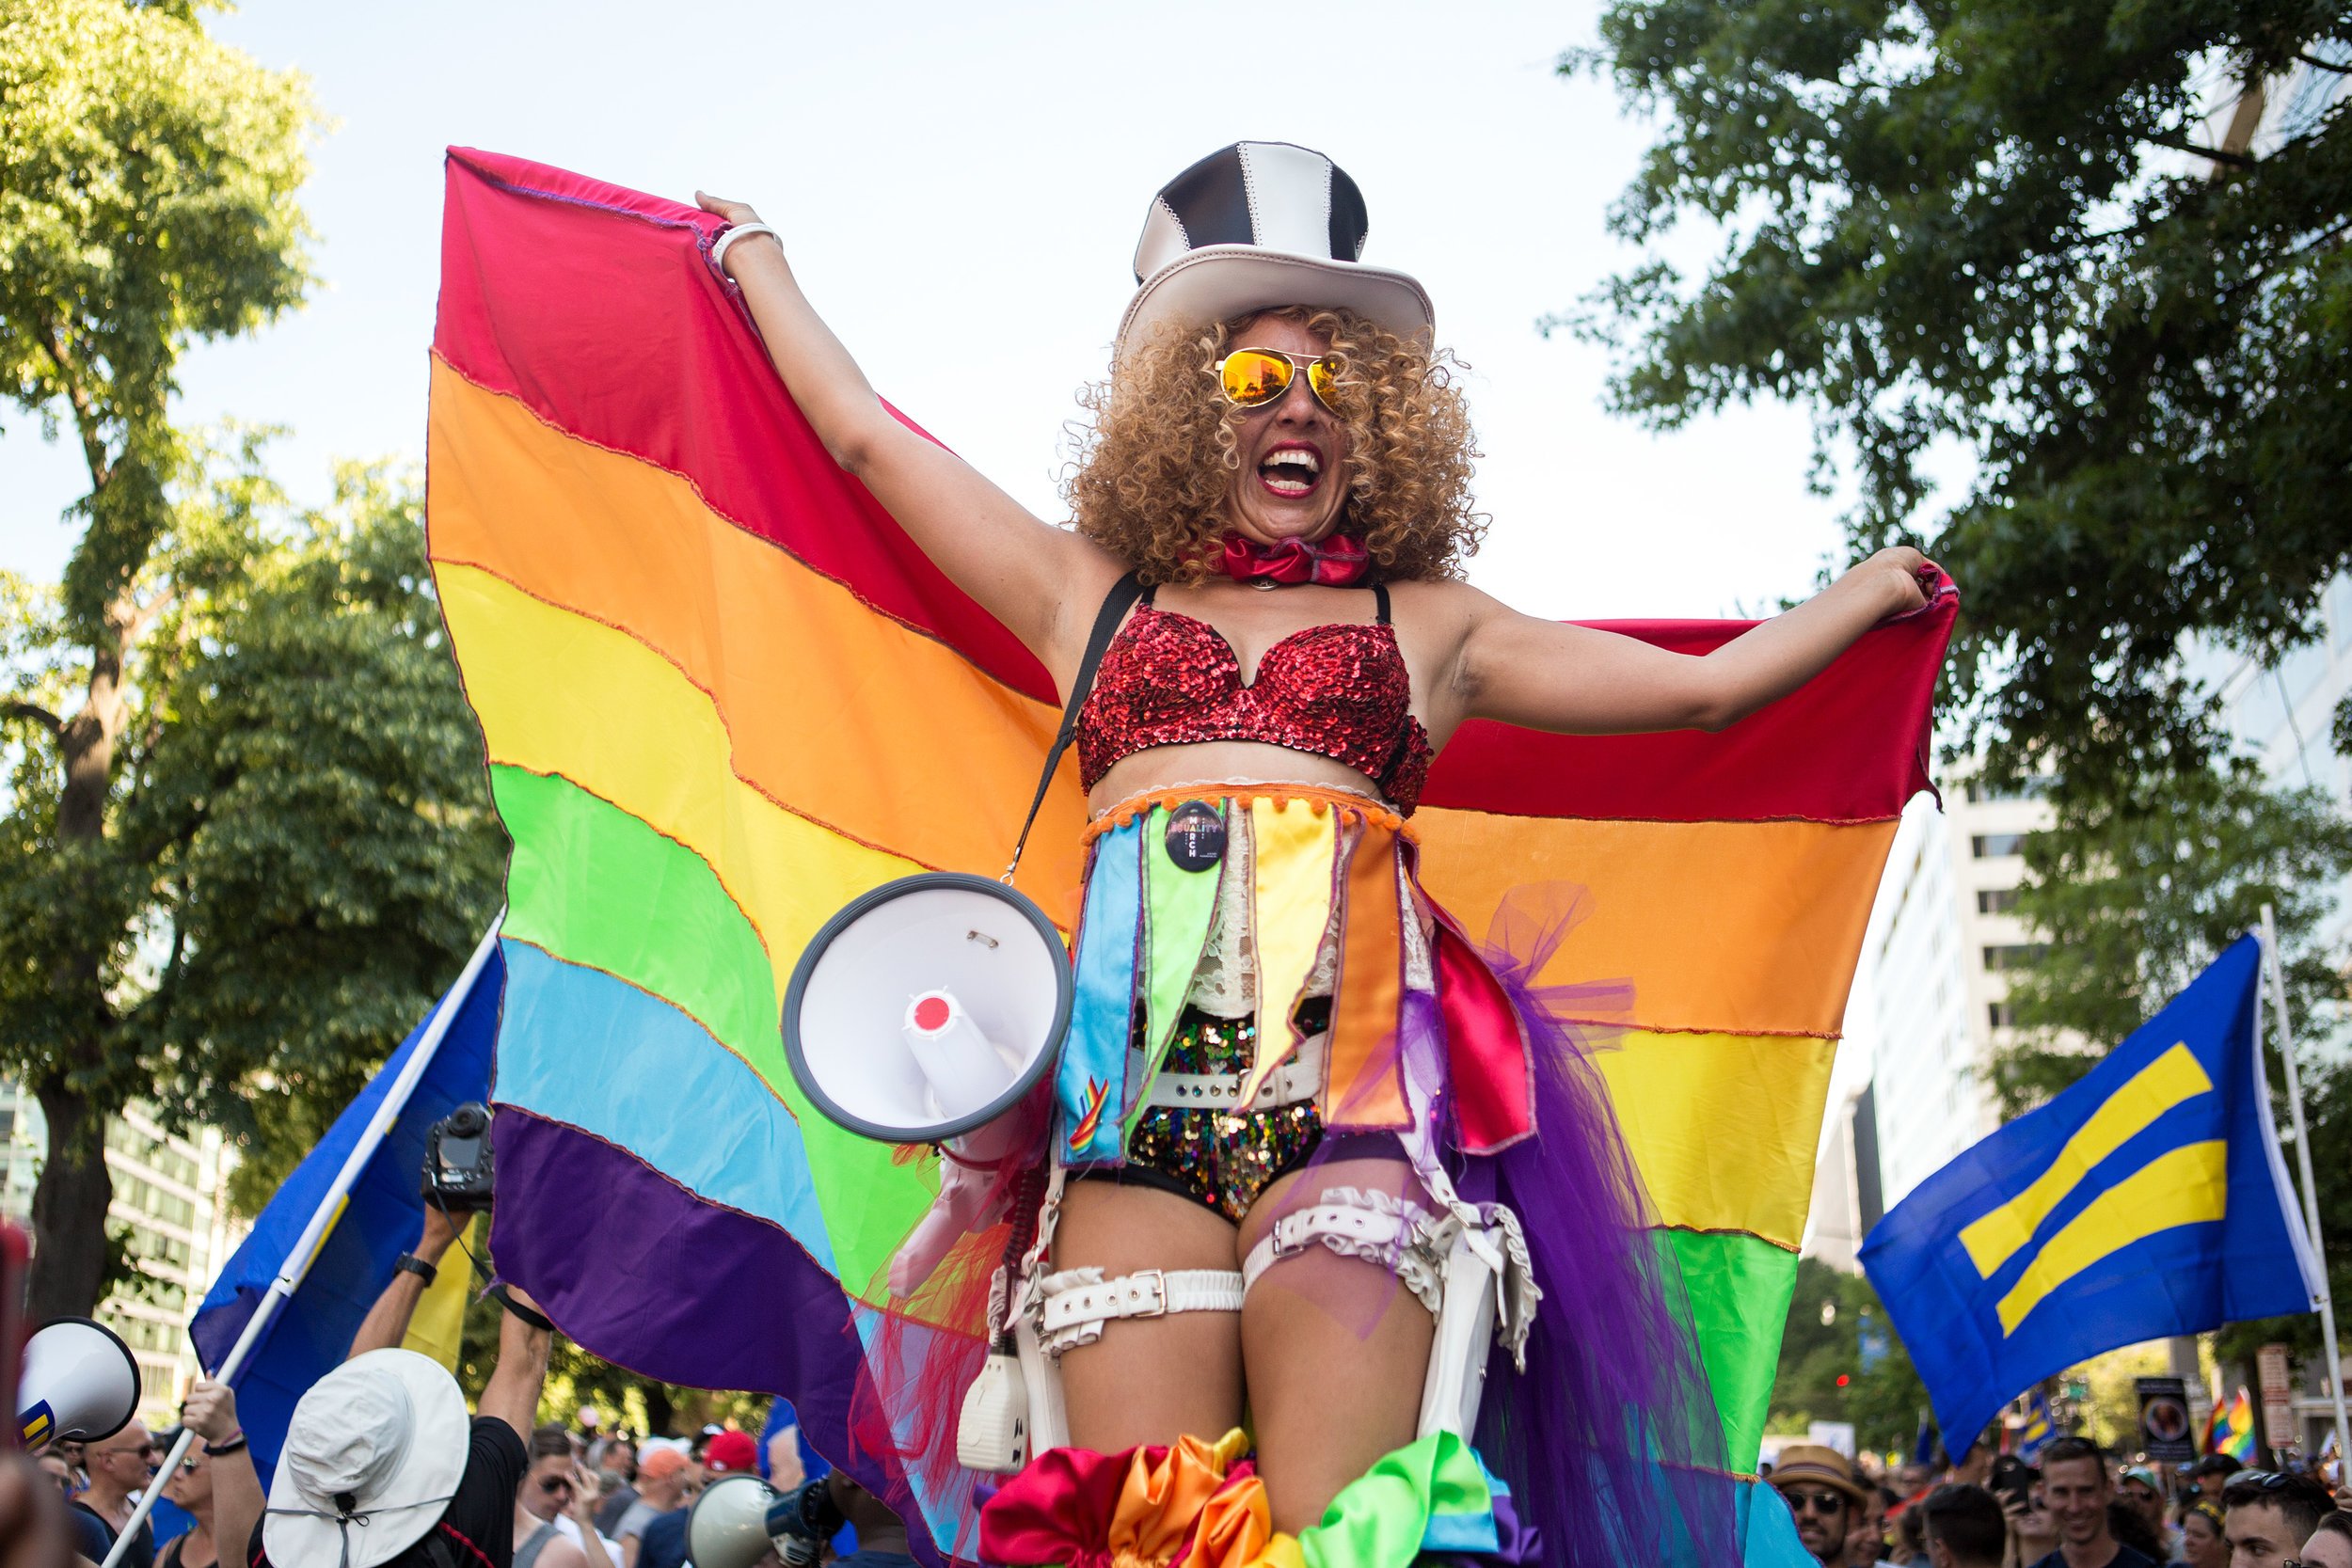 Regina Armenta of Philadelphia, PA cheered from above the crowd atop a pair of stilts during the Equality March in Washington D.C. on Sunday, June 11. (Photo: Liam James Doyle/NPR)